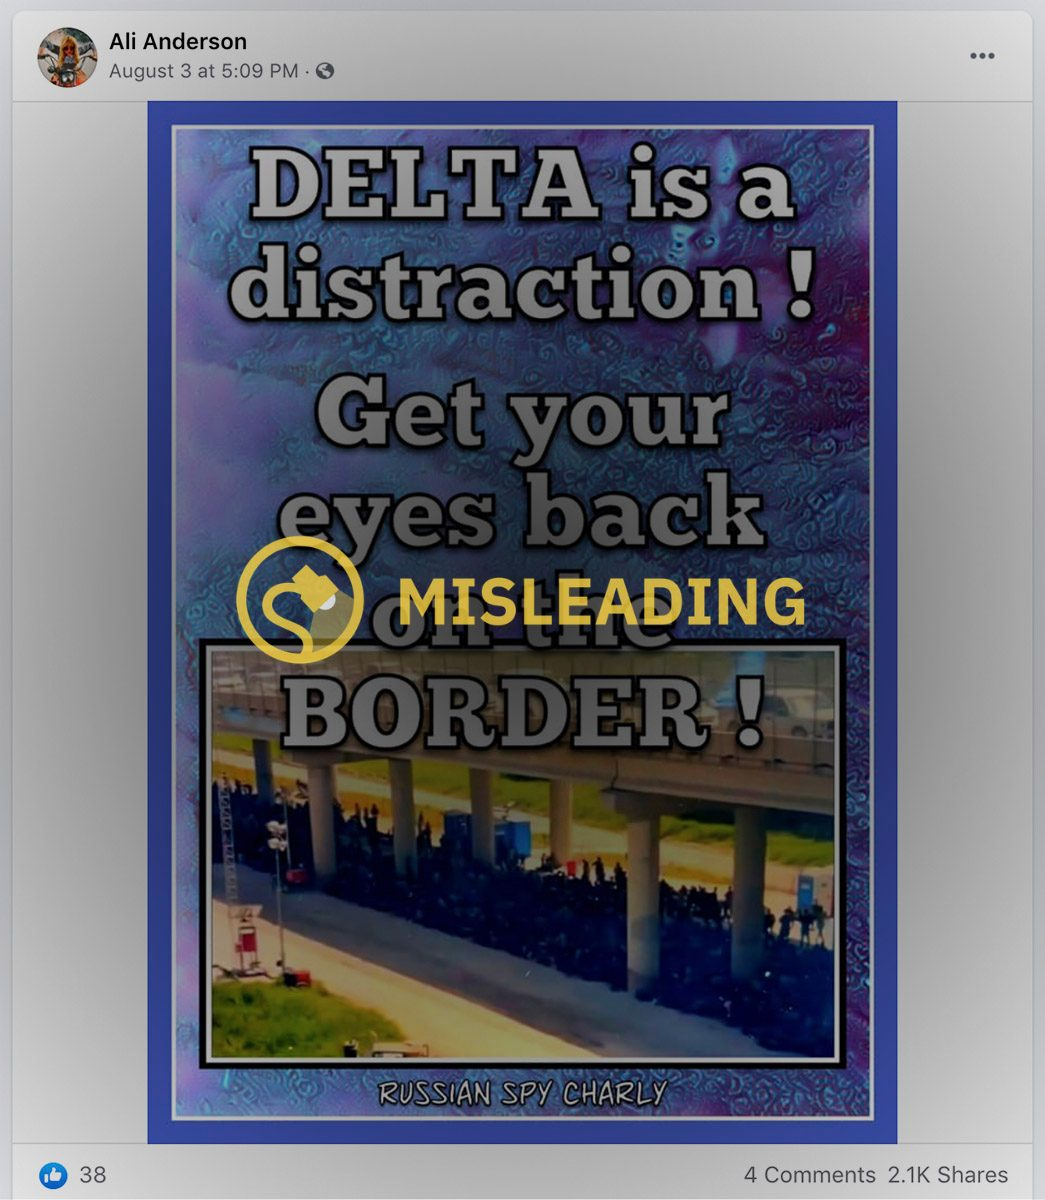 A Facebook meme misleadingly claimed that the Delta variant for COVID-19 was a distraction.